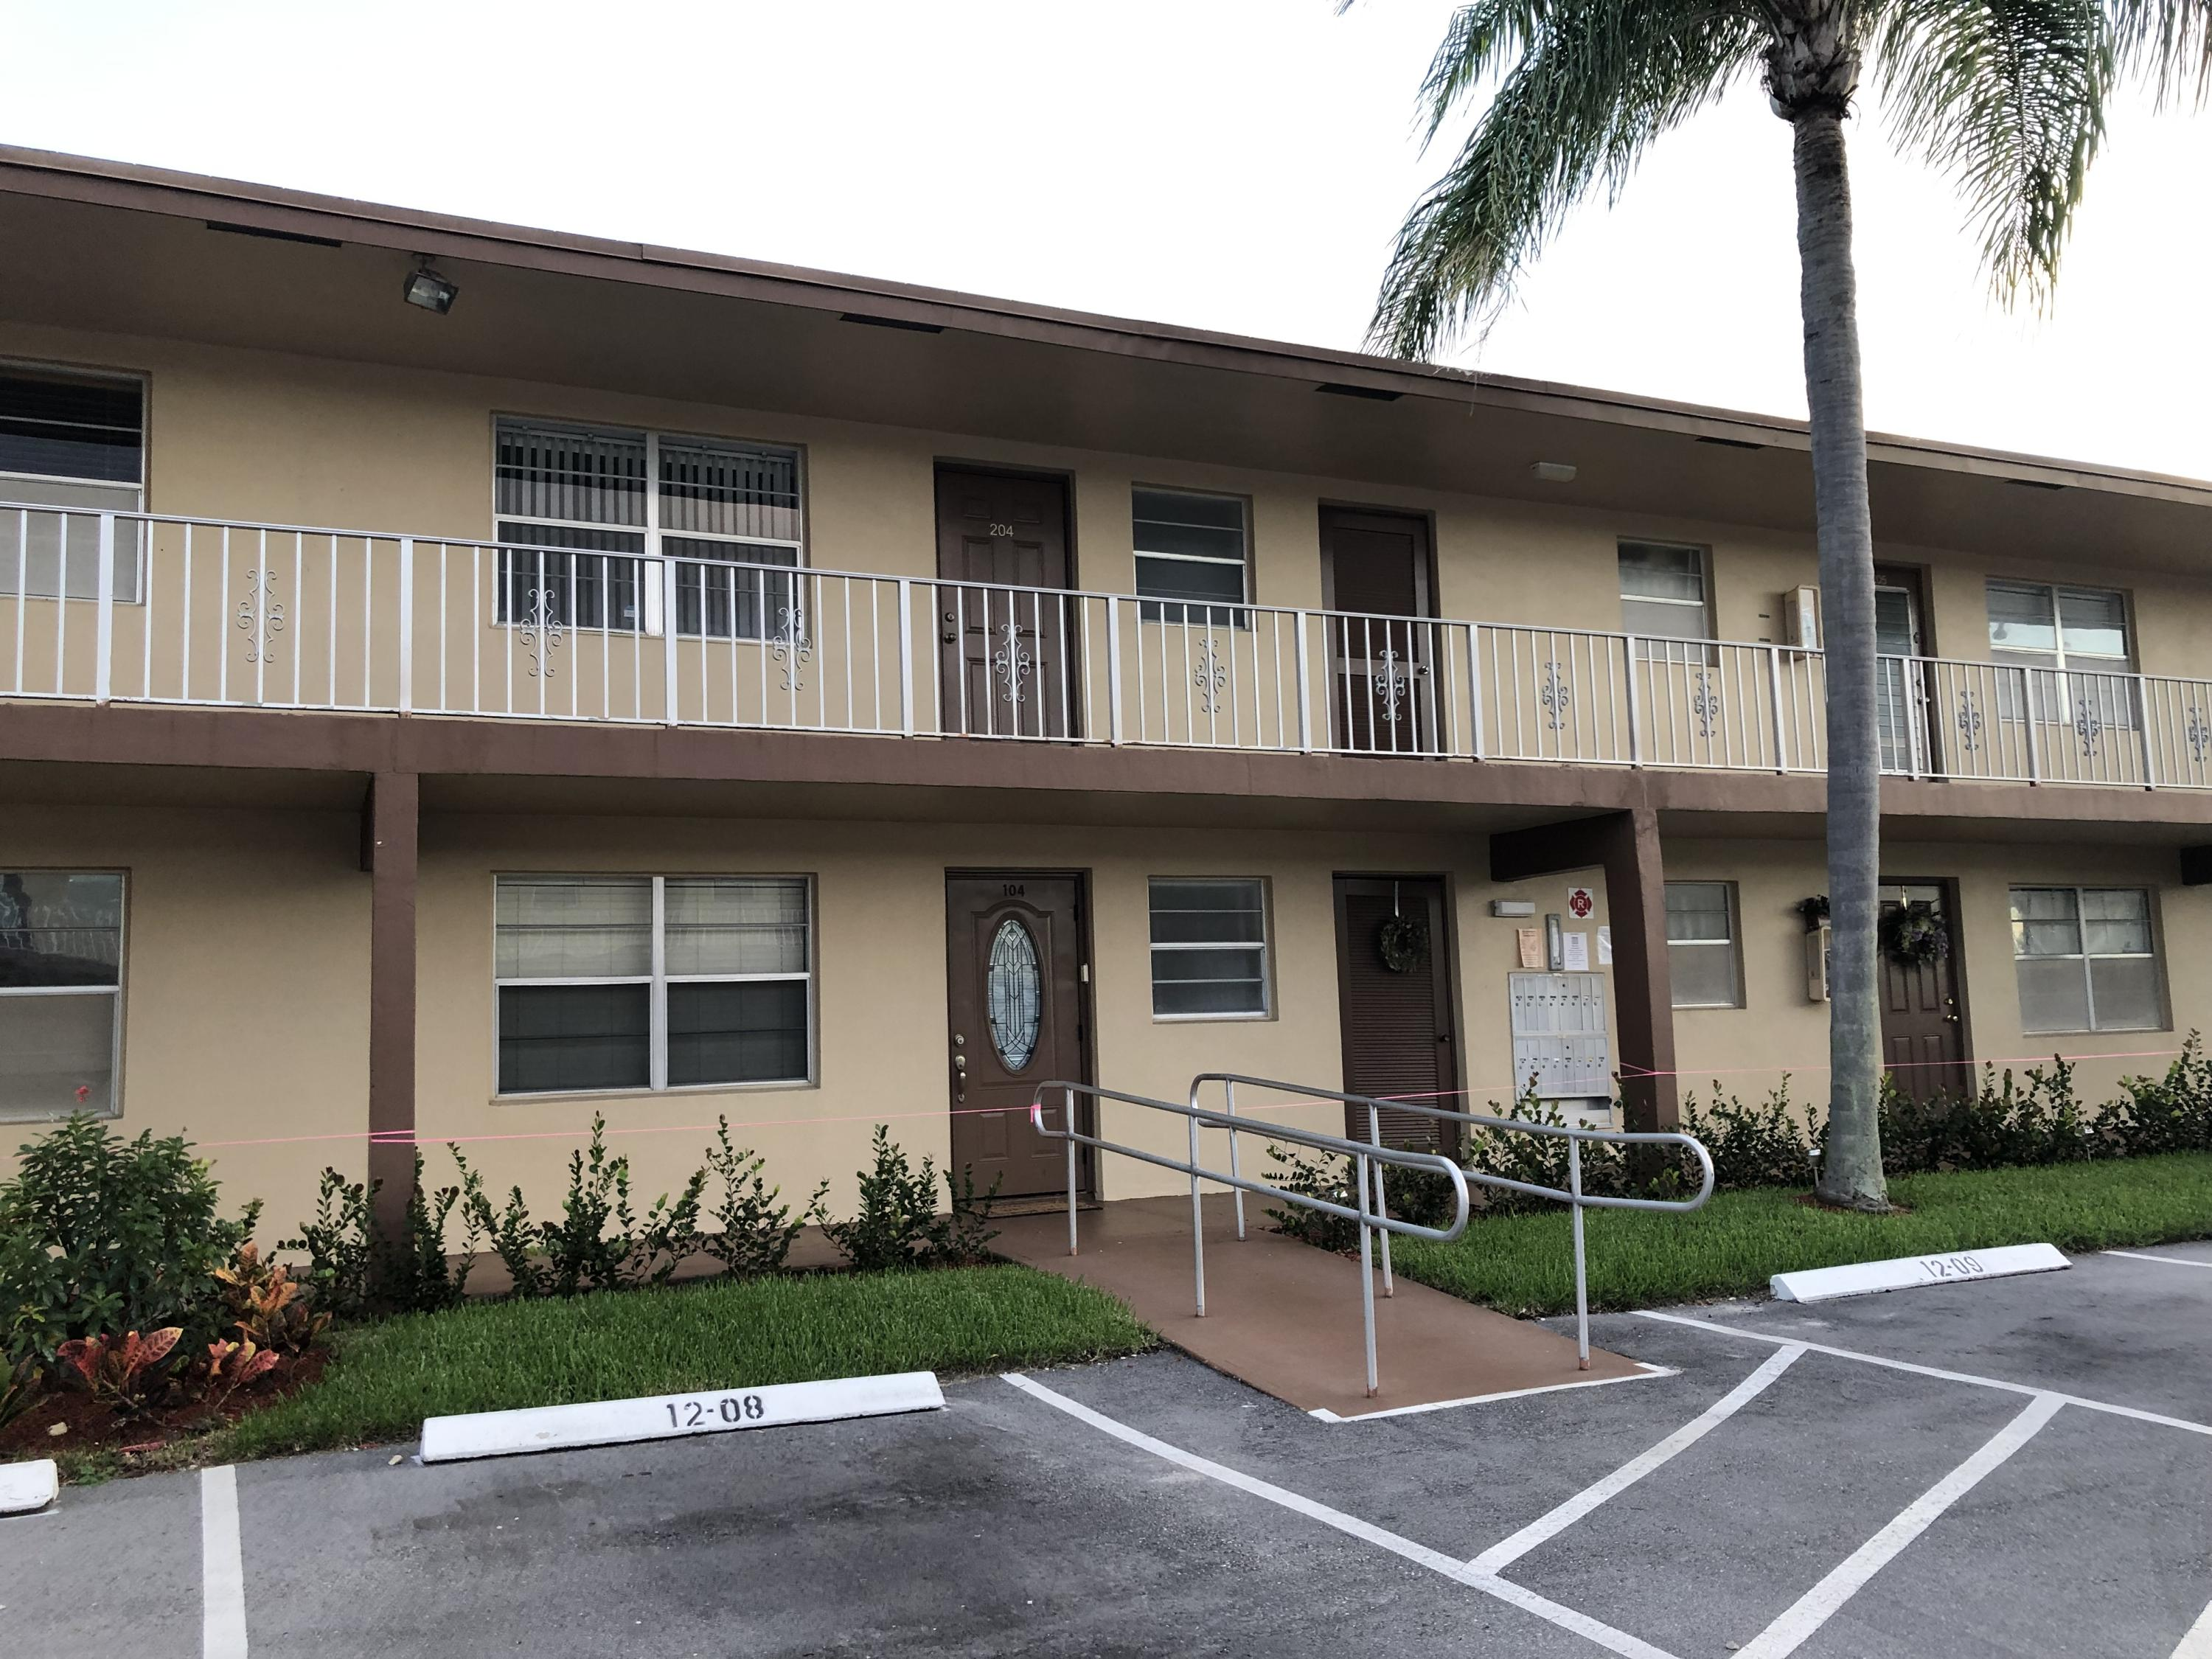 BEST RENTAL IN ORIOLE GARDENS!!!  BRAND NEW KITCHEN, NEW CARPET, NEW FIXTURES, NEW CLOSET DOORS, NEW WATER HEATER AND MORE. NICE PATIO WITH GARDEN VIEWSecond floor unit conveniently located next to the laundry room, with storage, Sorry no pets allowed, 1 car only, 55 and over community. minimum credit score 675 per Association.